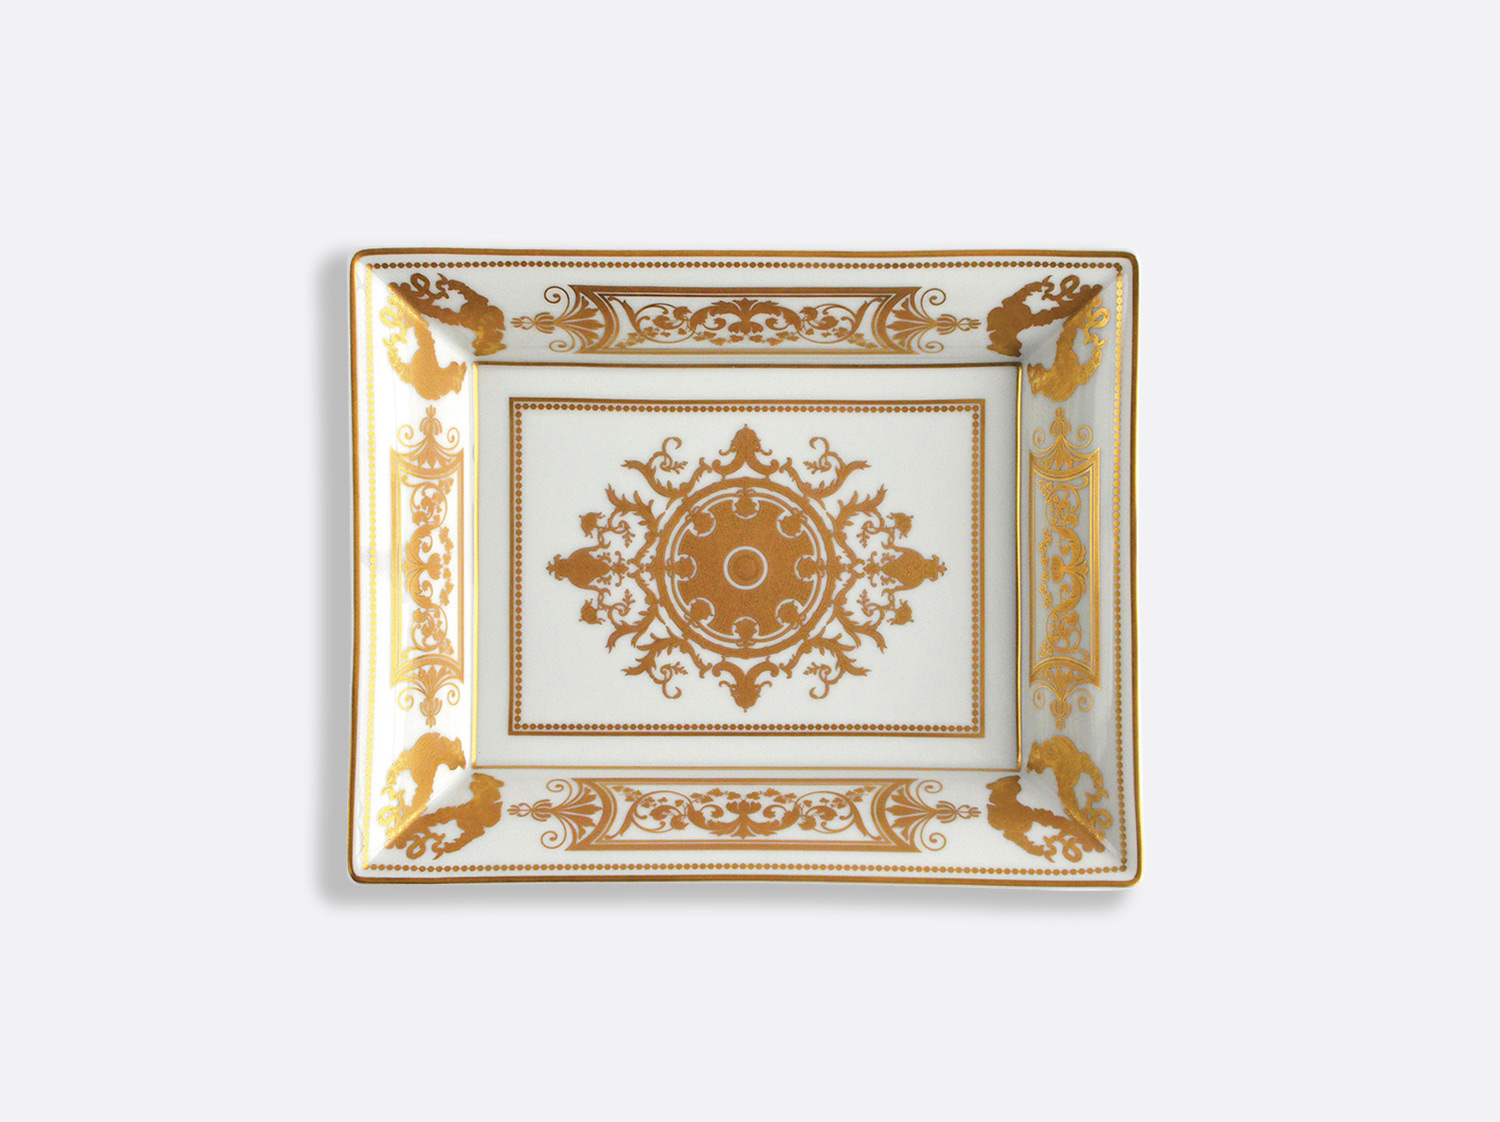 China Valet tray 20x16 cm of the collection Aux Rois Or | Bernardaud